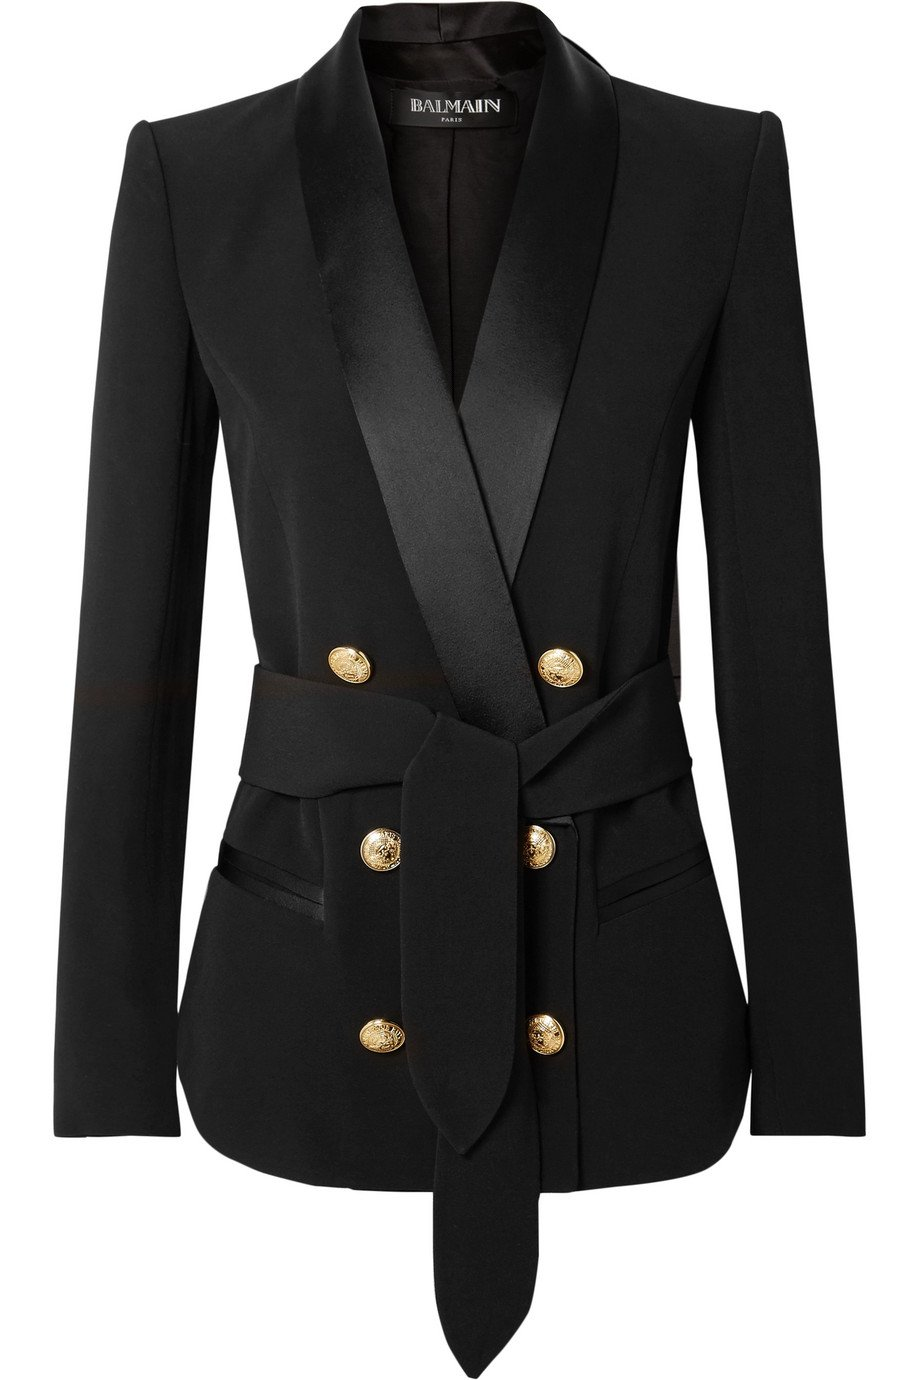 Balmain | Belted double-breasted crepe blazer | NET-A-PORTER.COM